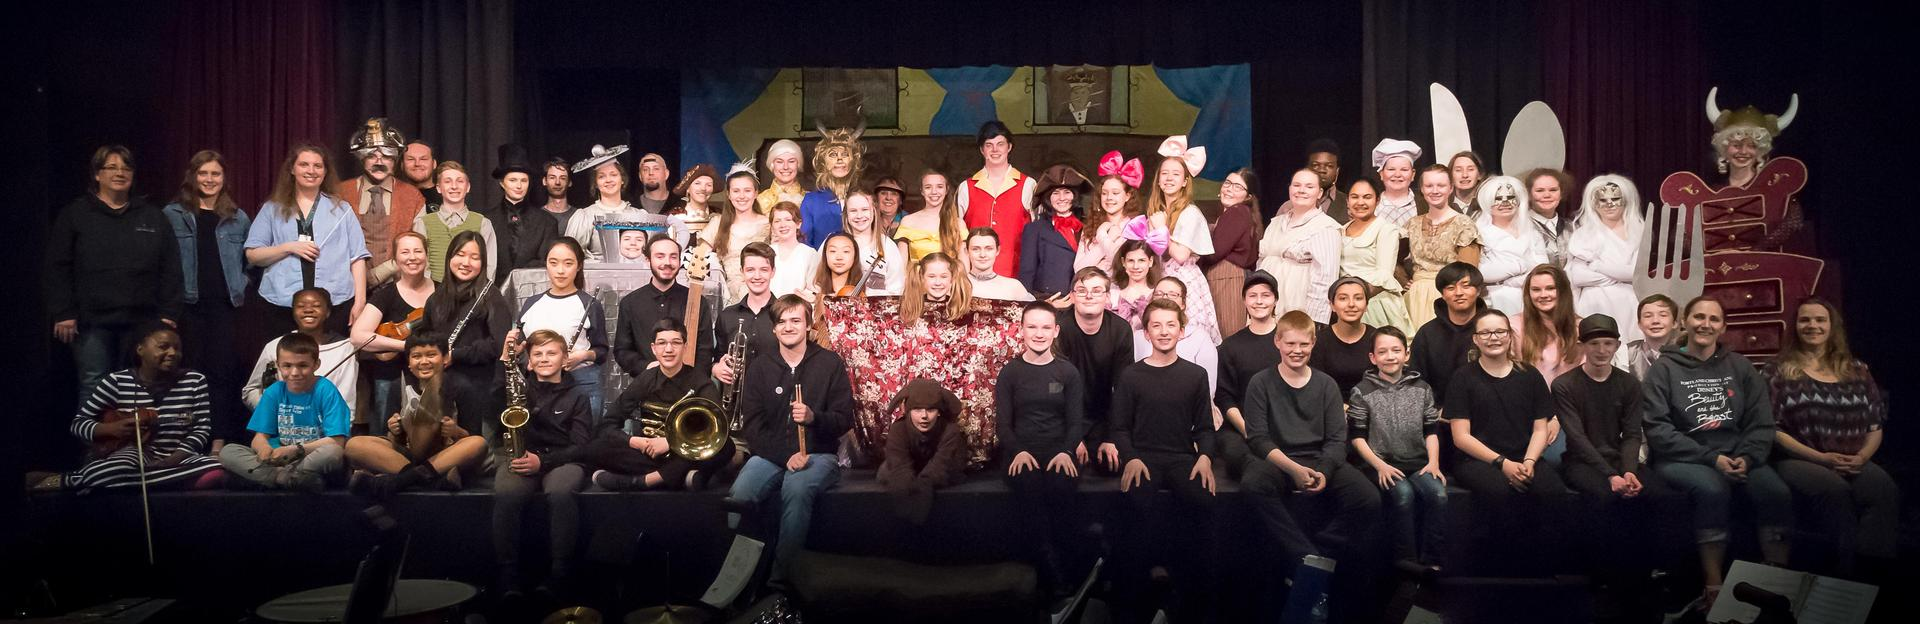 Cast and Crew for spring musical 2019 Beauty and the Beast